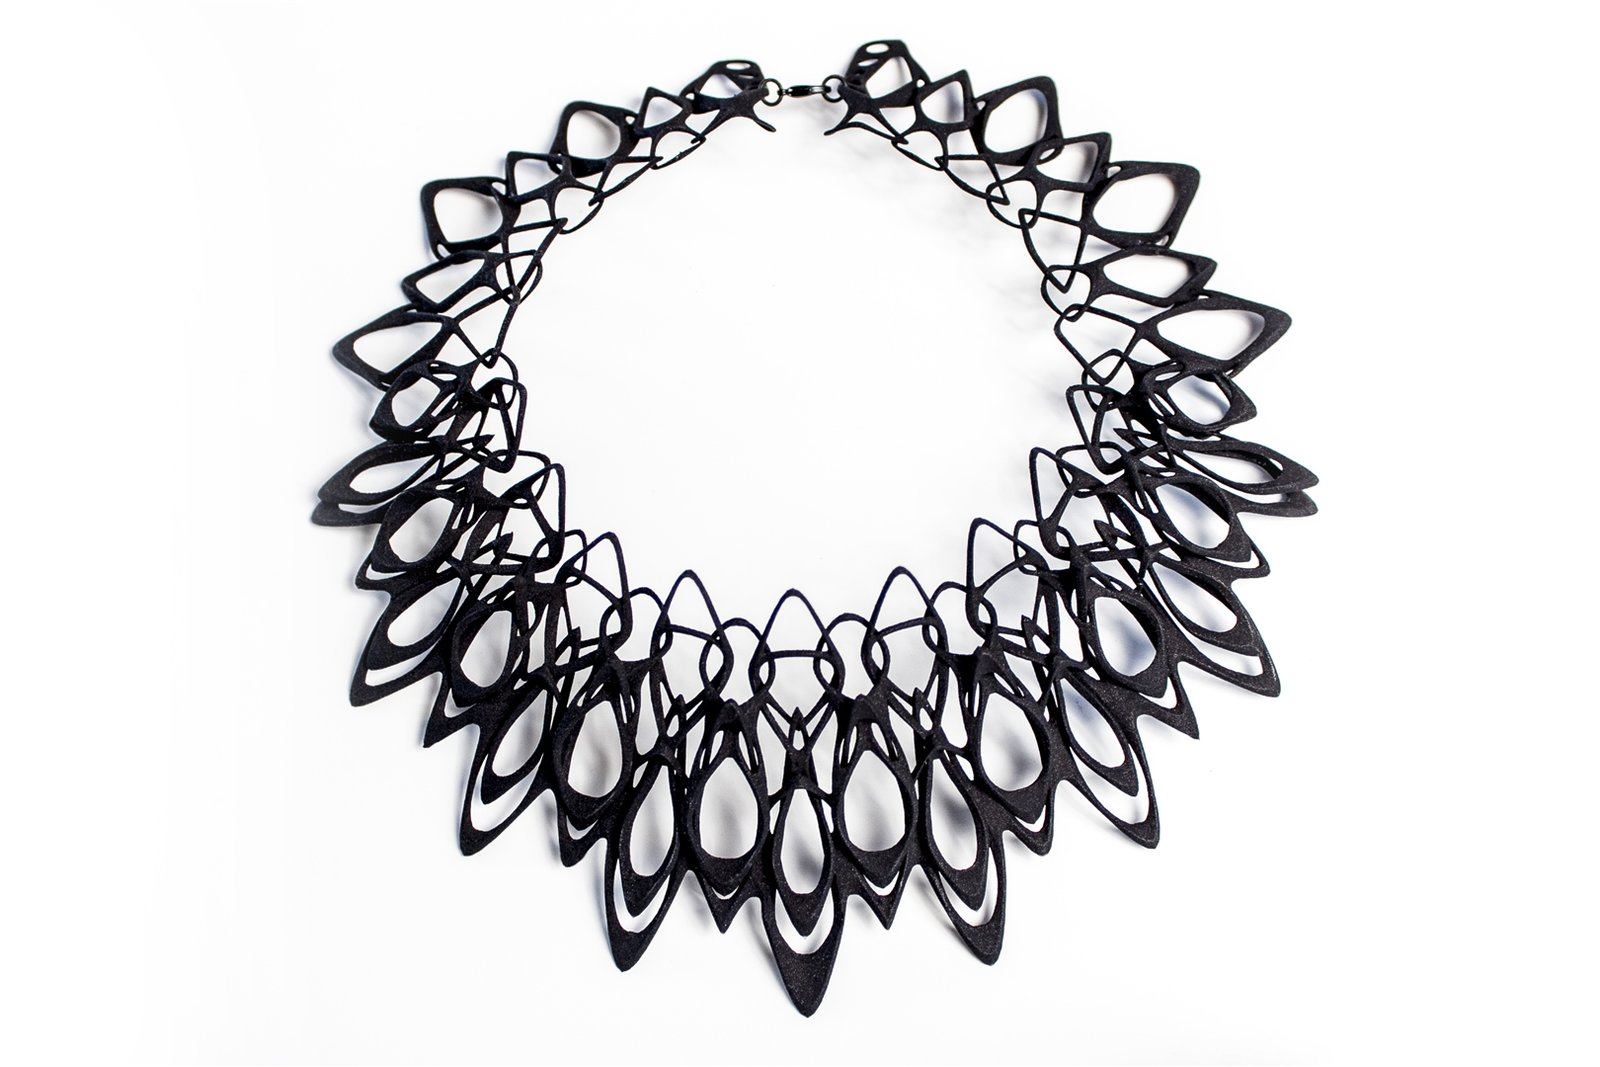 The Stria necklace.  Photo 2 of 5 in Stunning Modern 3-D Printed Jewelry